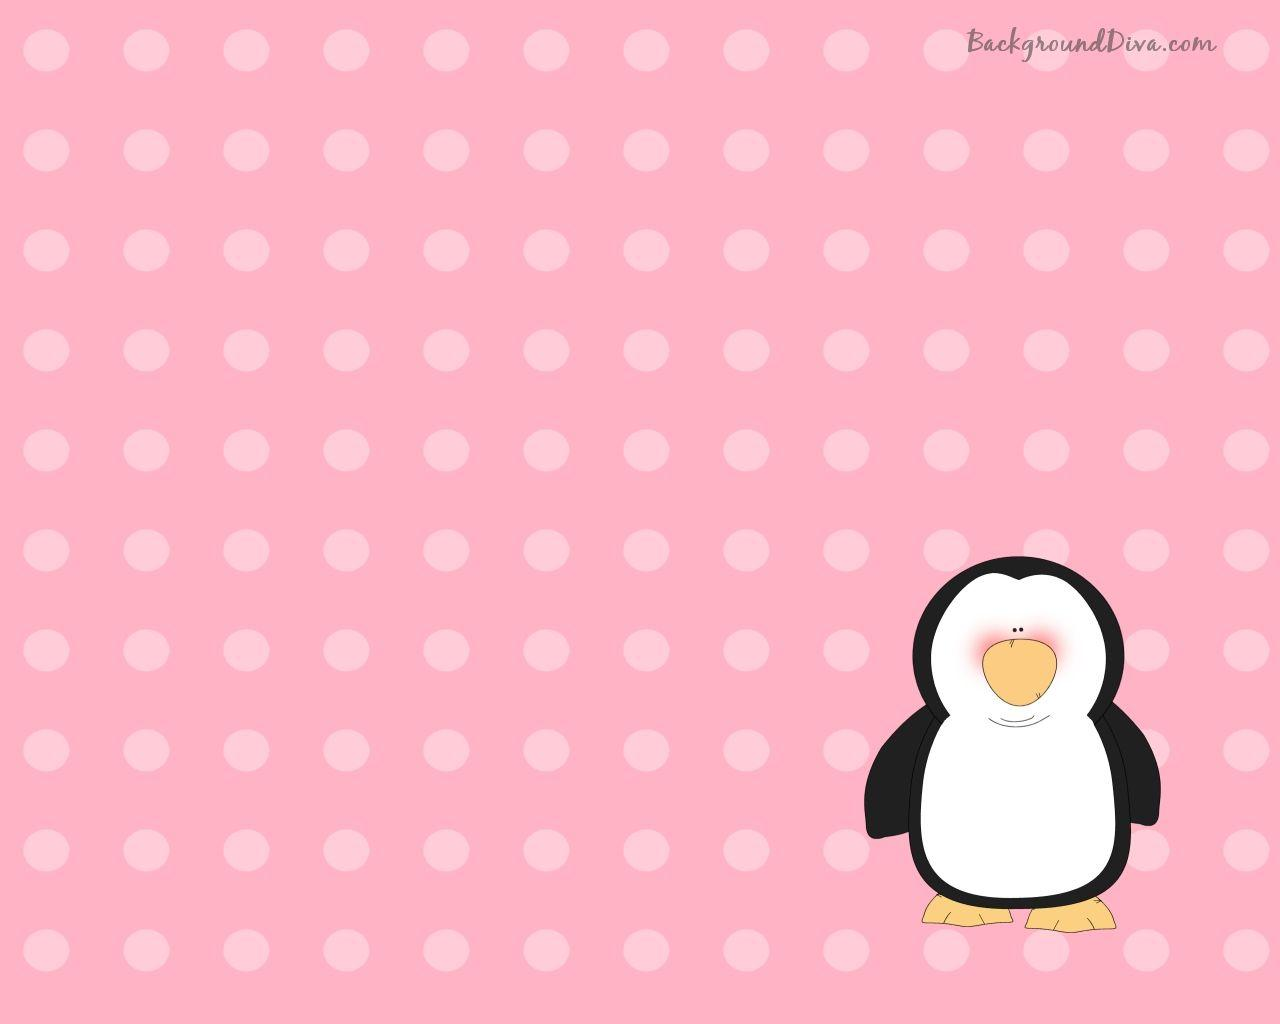 Cute Backgrounds Wallpapers 1280x1024